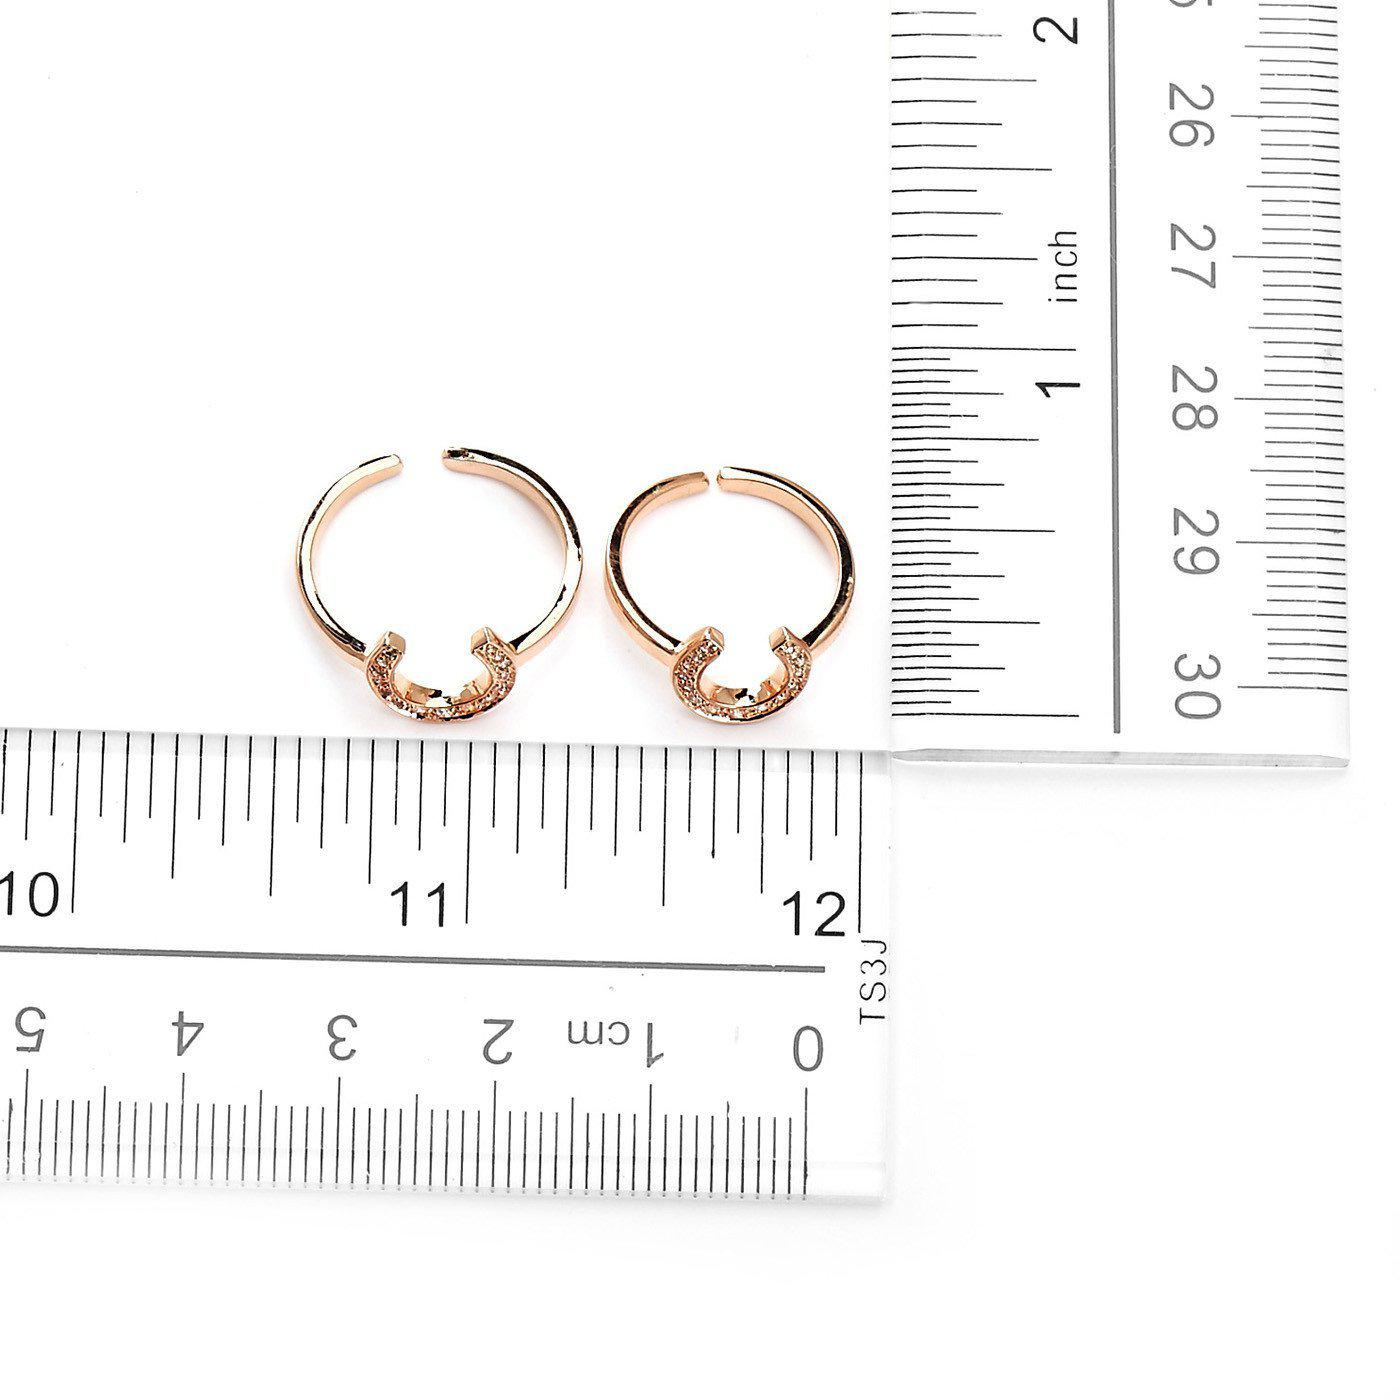 Lucky Horse Shoe Fashion Midi Ring-Blinglane